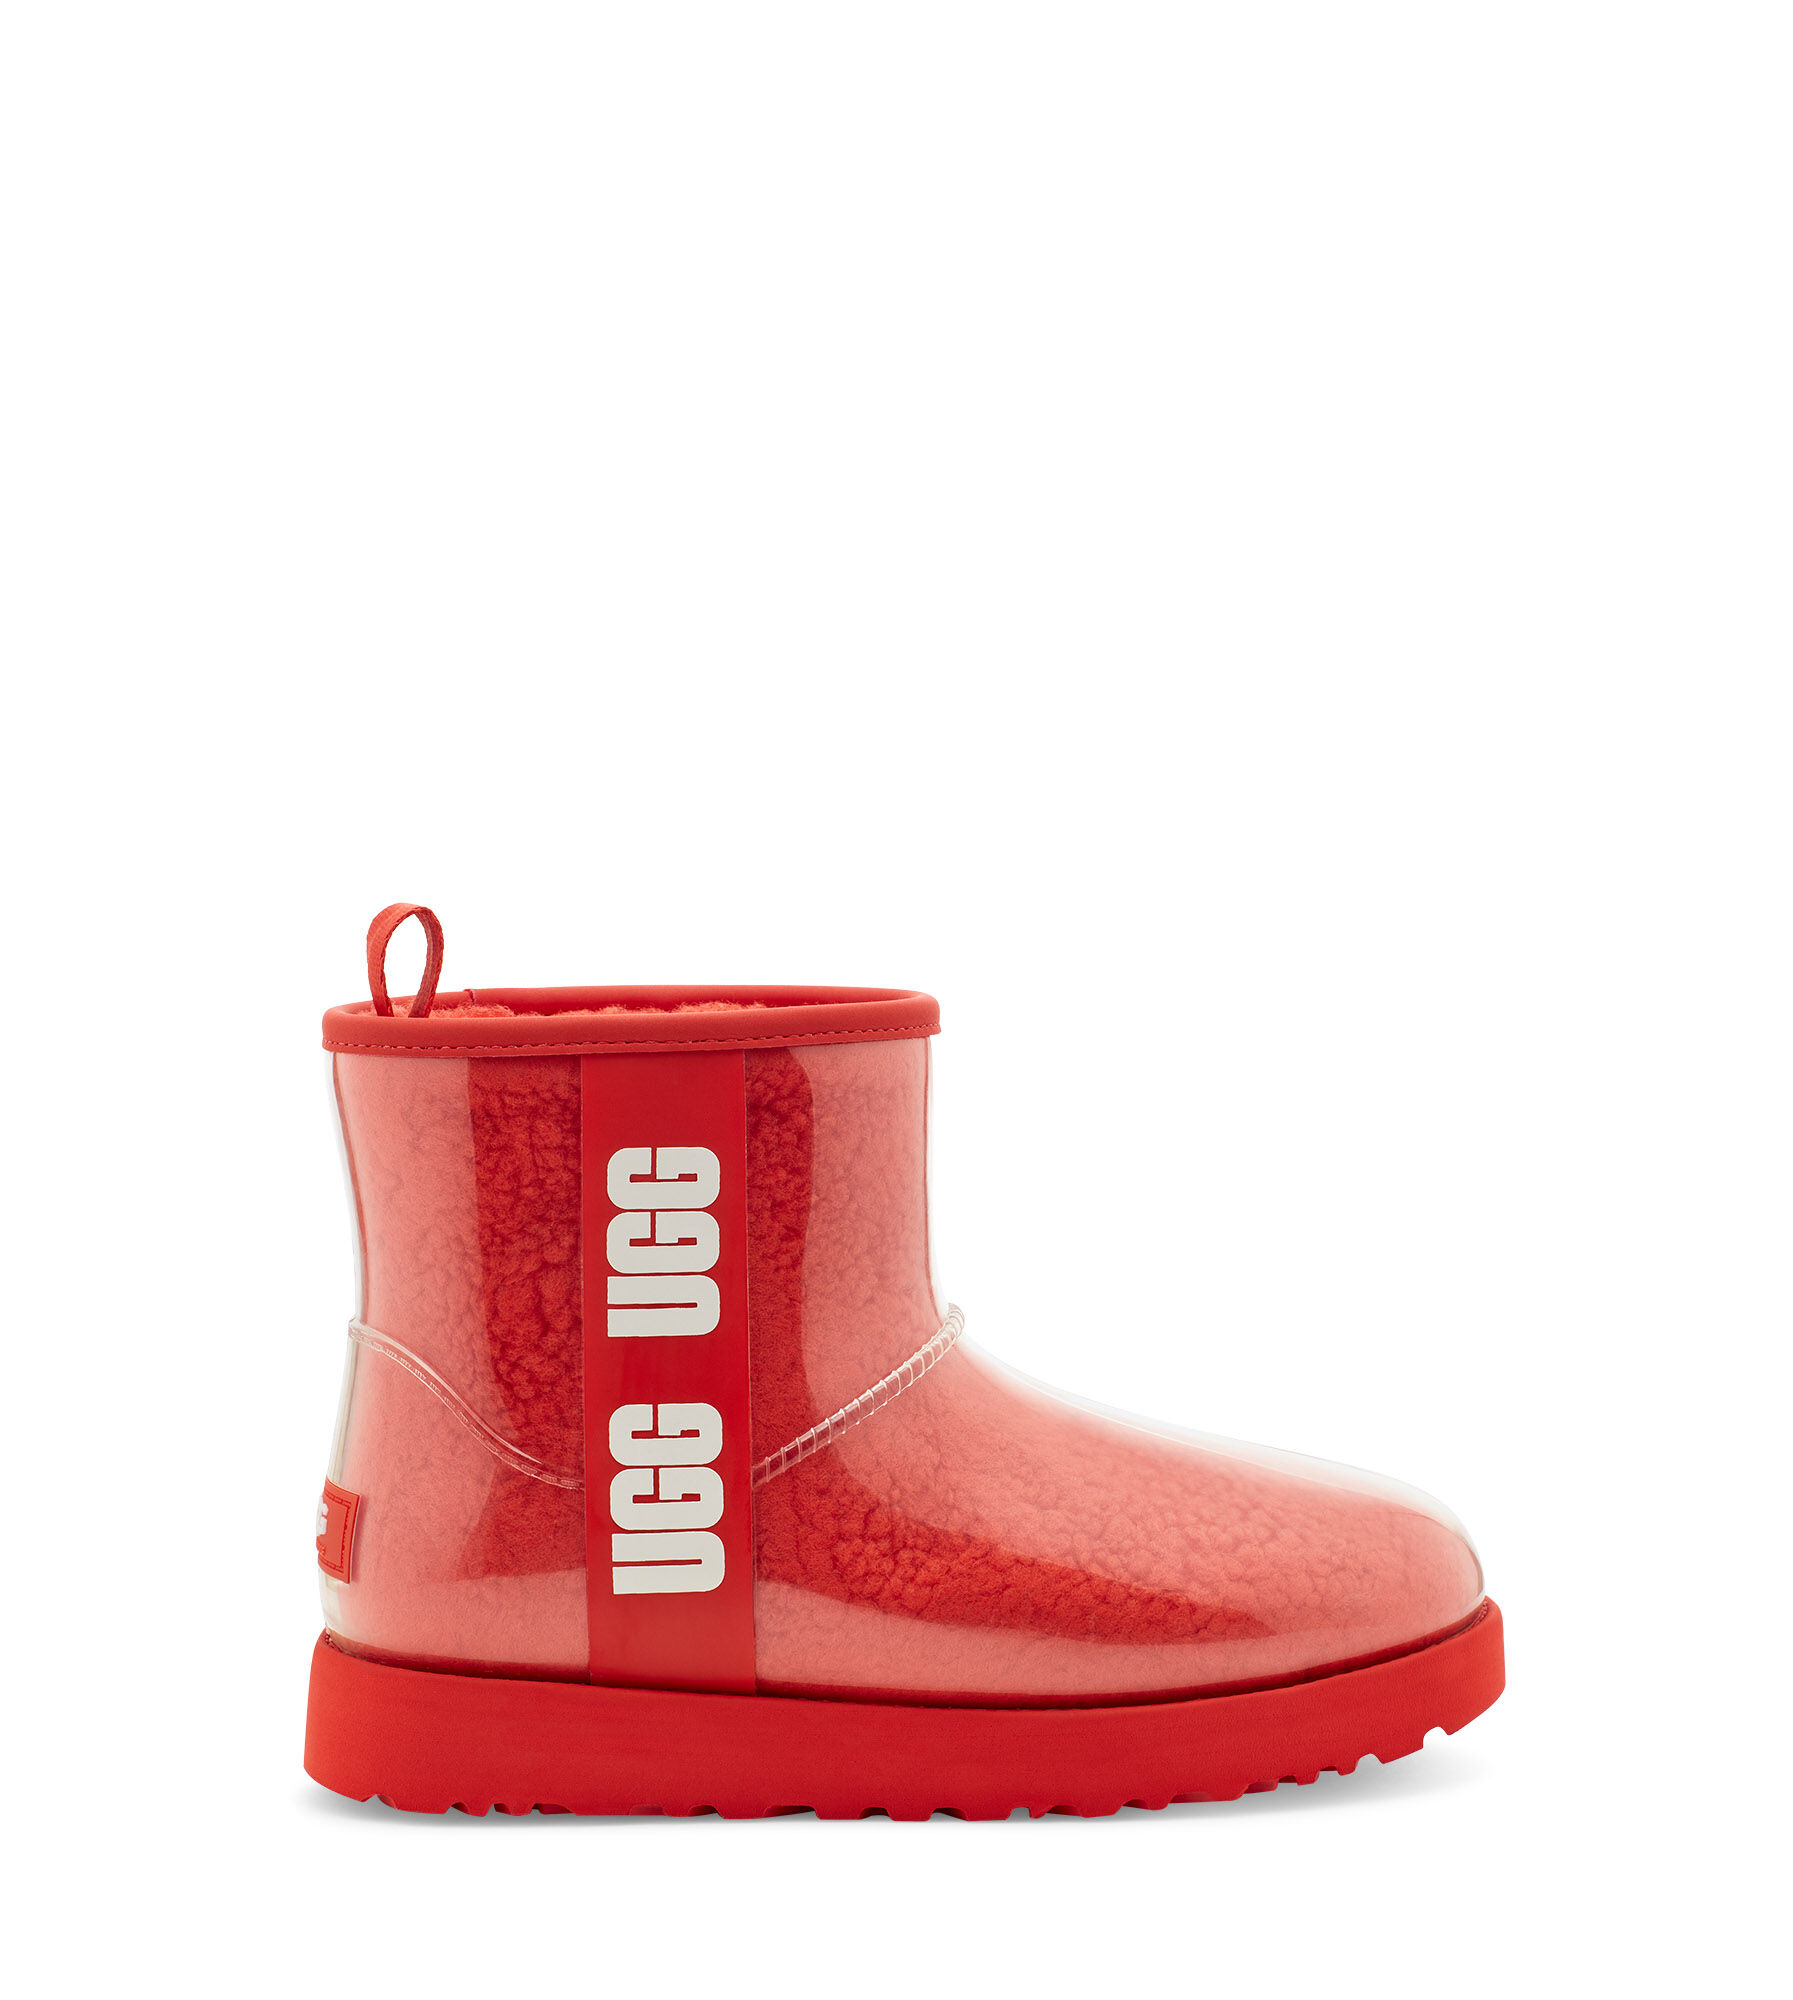 Women's Red Classic Boots | UGG